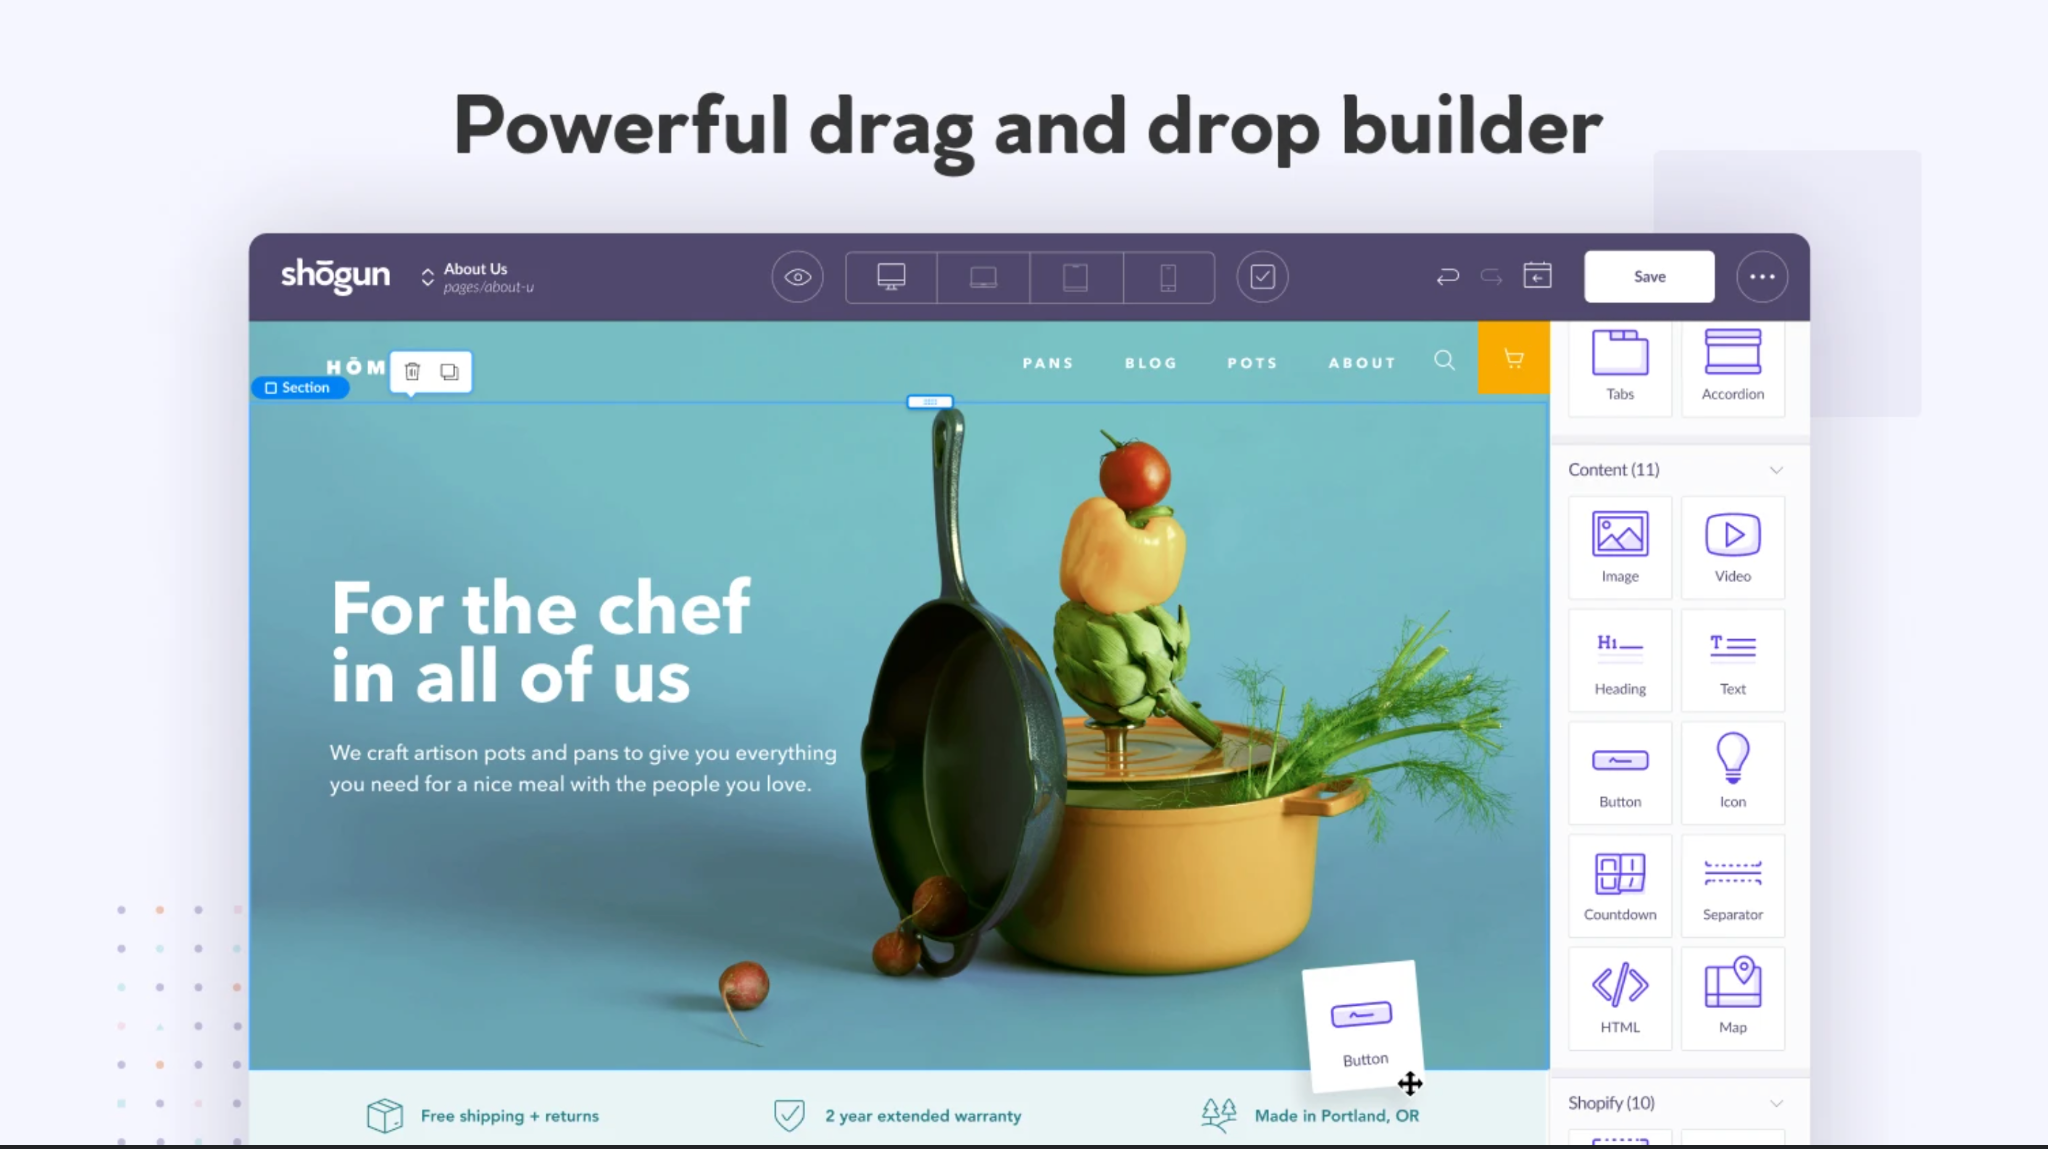 shogun page builder drag and drop builder for shopify